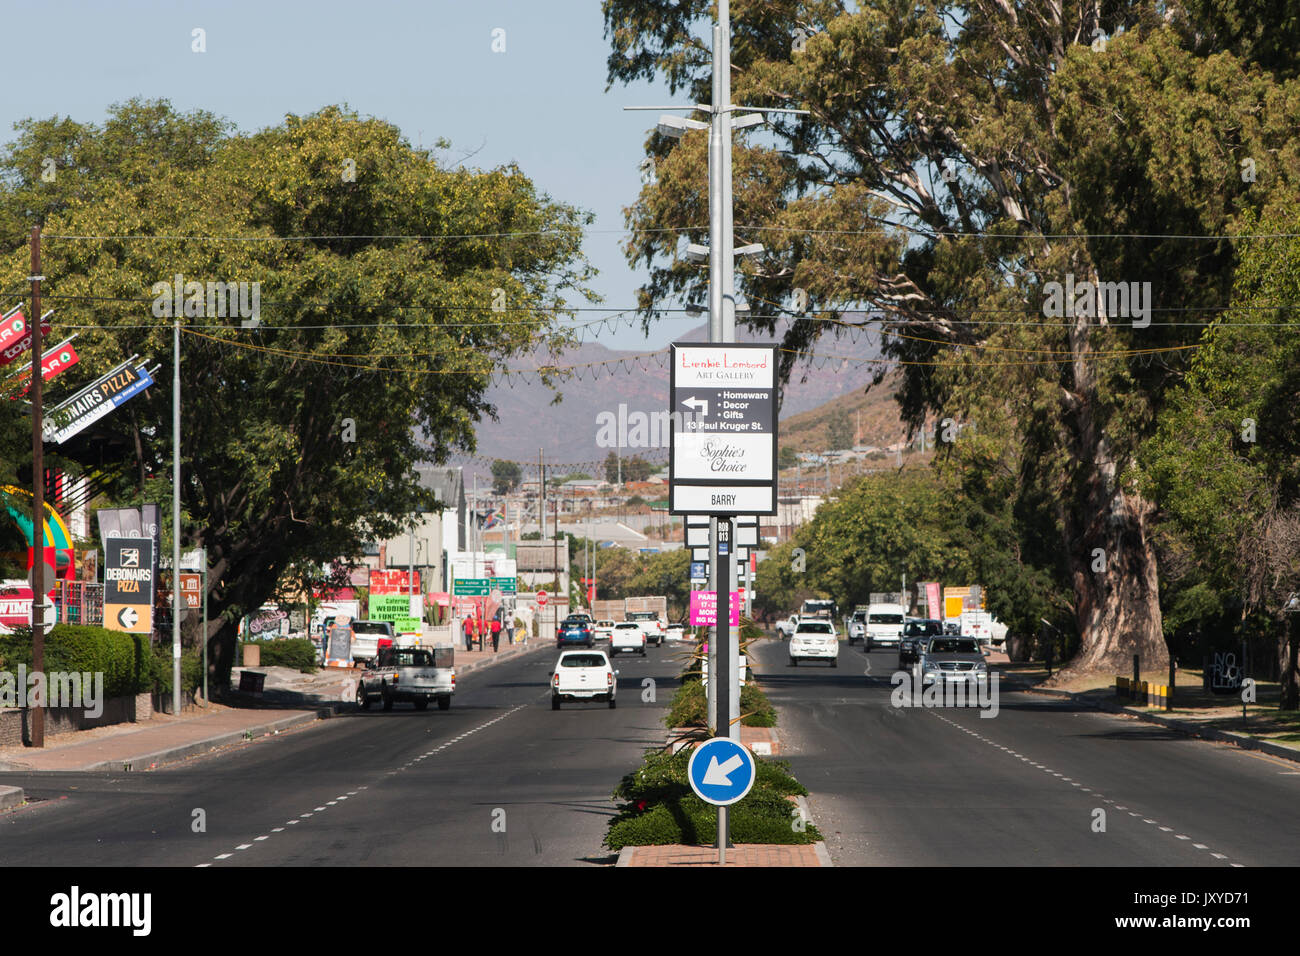 Robertson main road, Western Cape, South Africa. Stock Photo